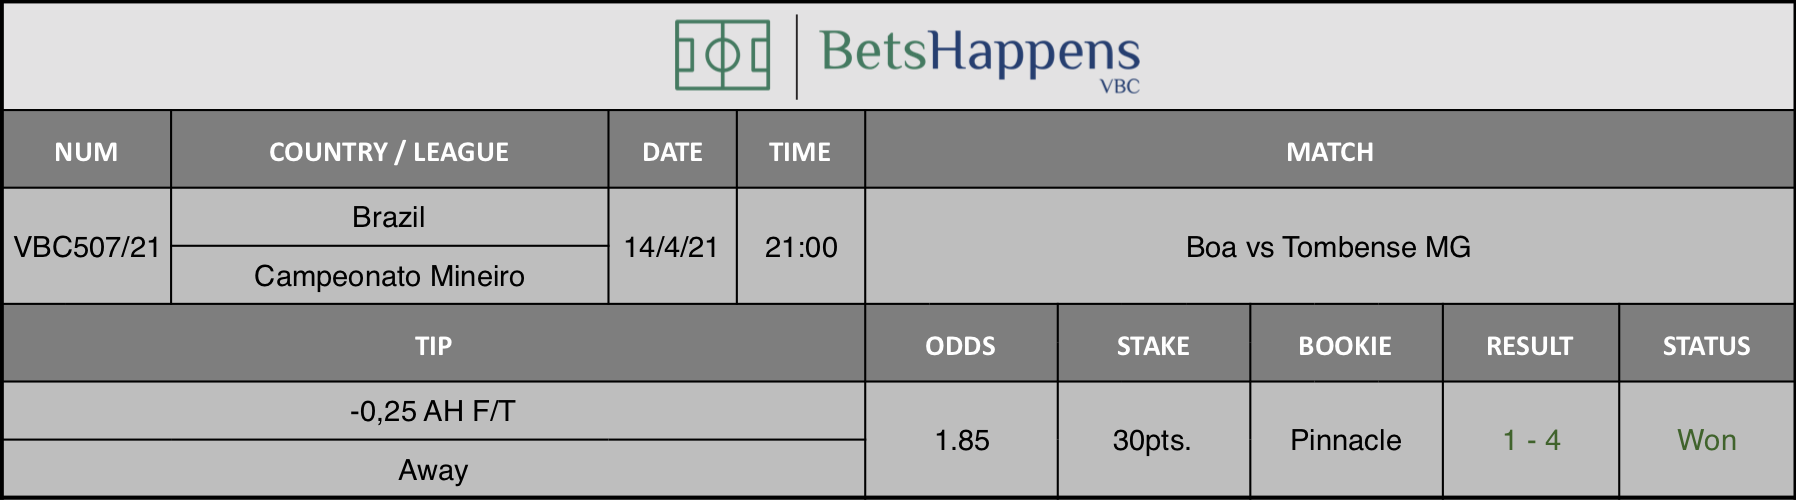 Results of our tip for the Boa vs Tombense MG match where -0,25 AH F/T Away is recommended.